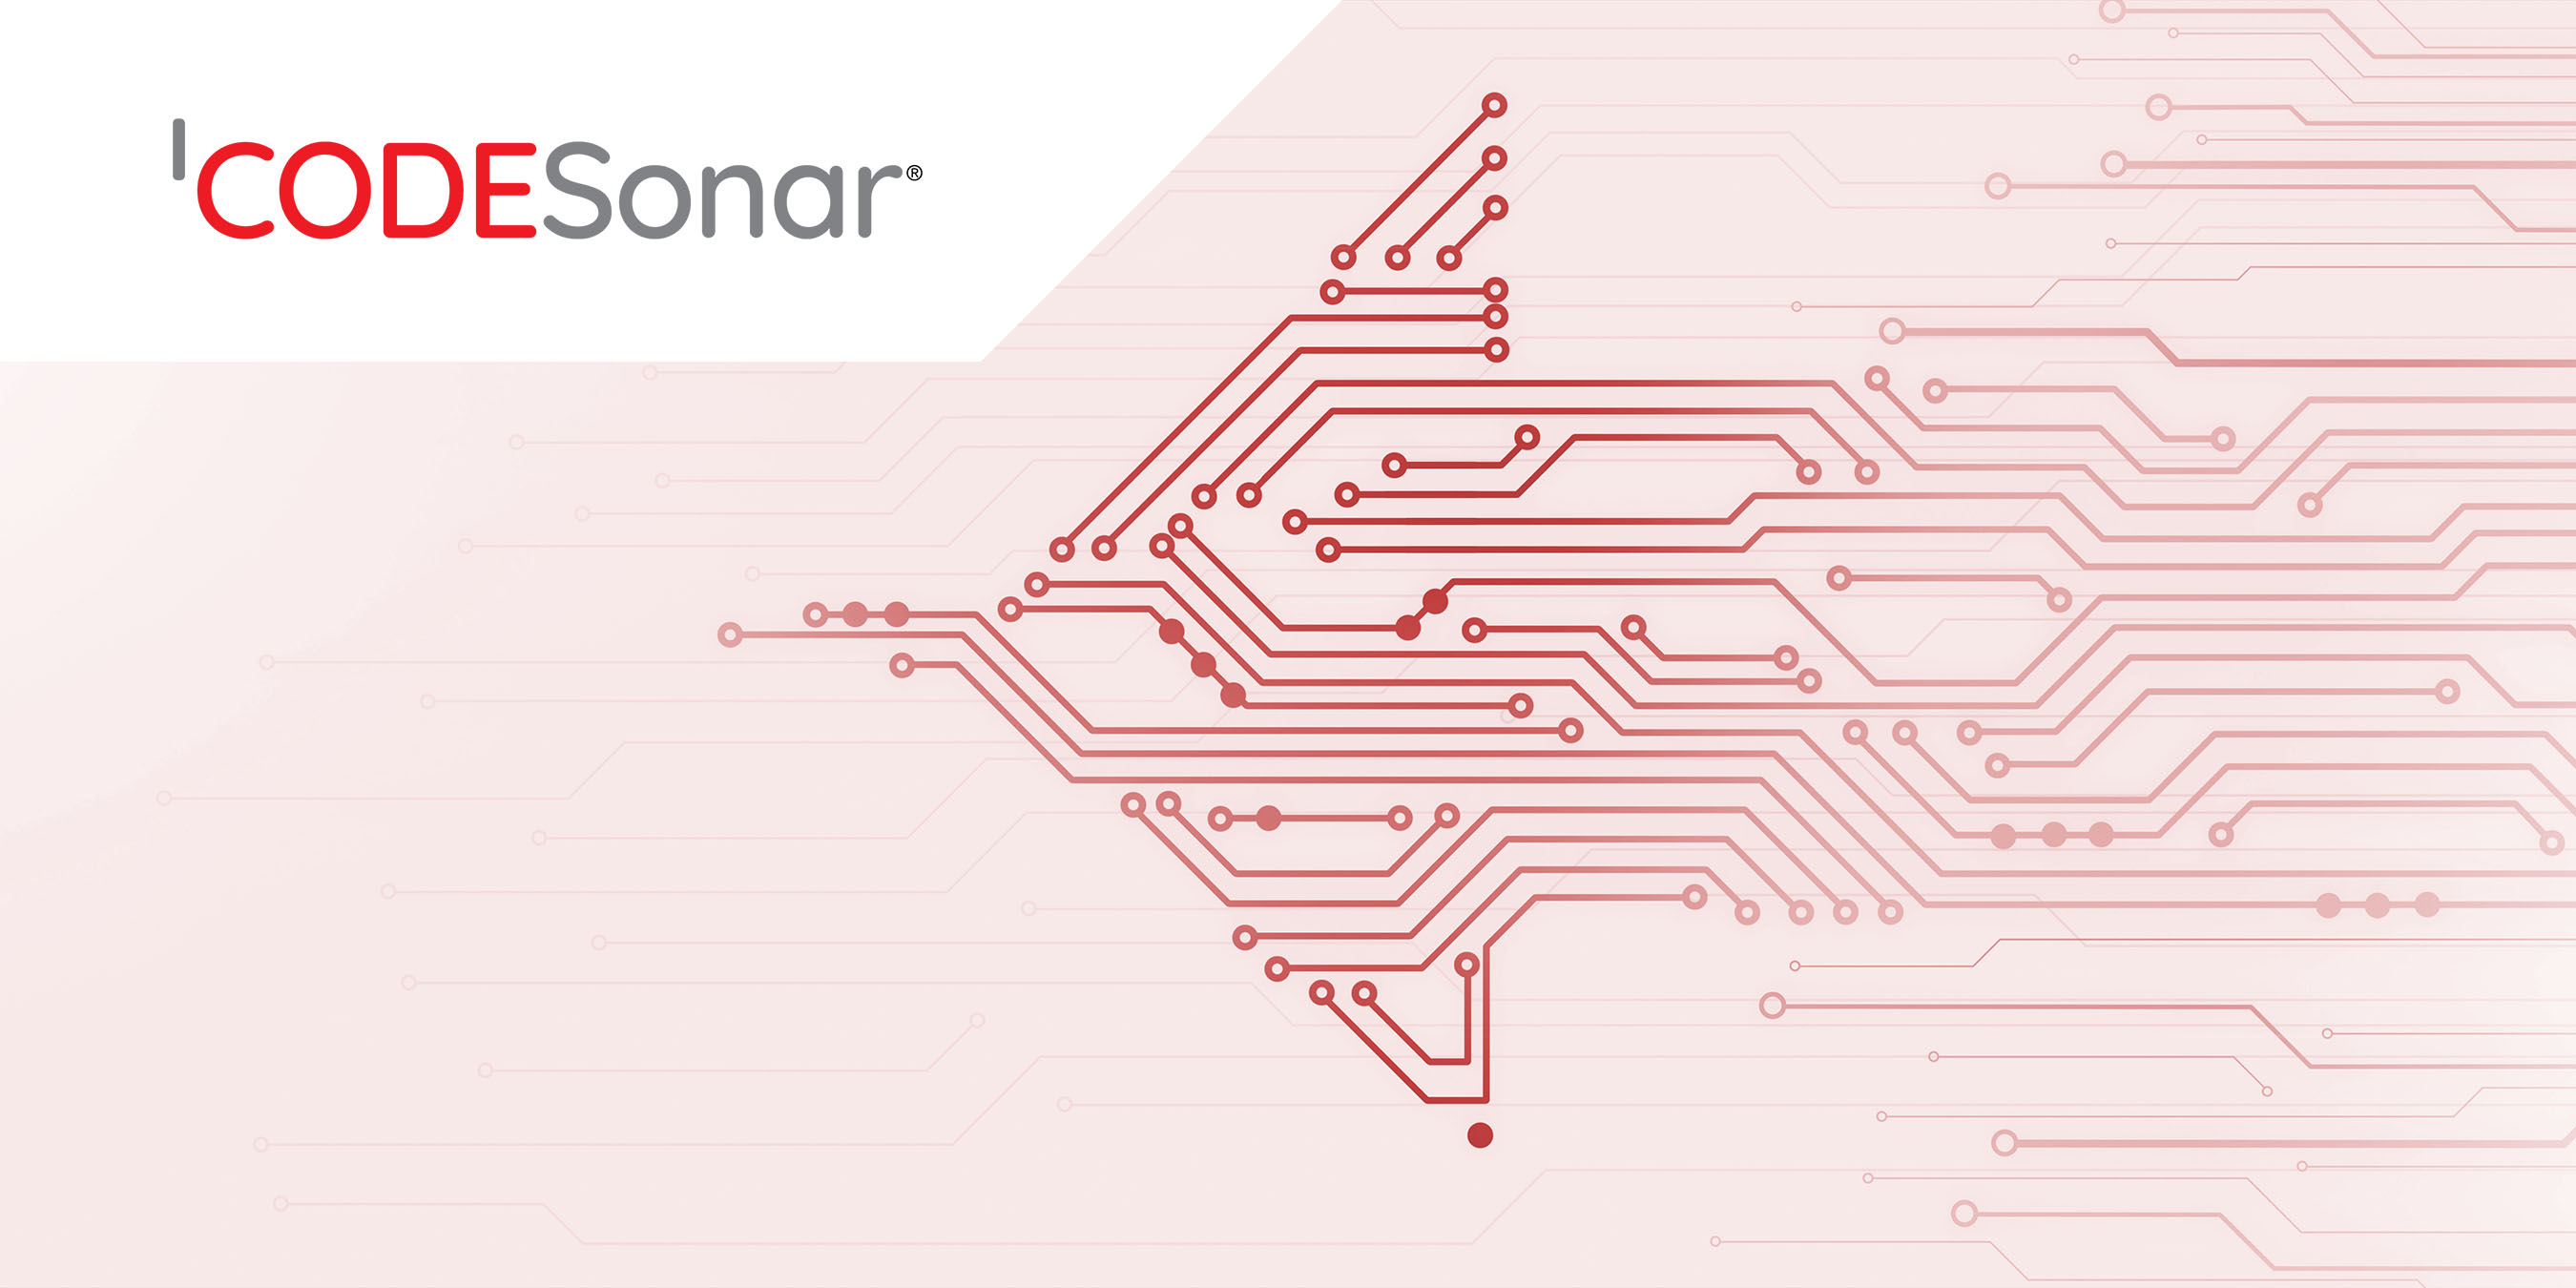 New Version of GrammaTech CodeSonar® Provides Deeper Integration of SAST within DevOps Pipelines